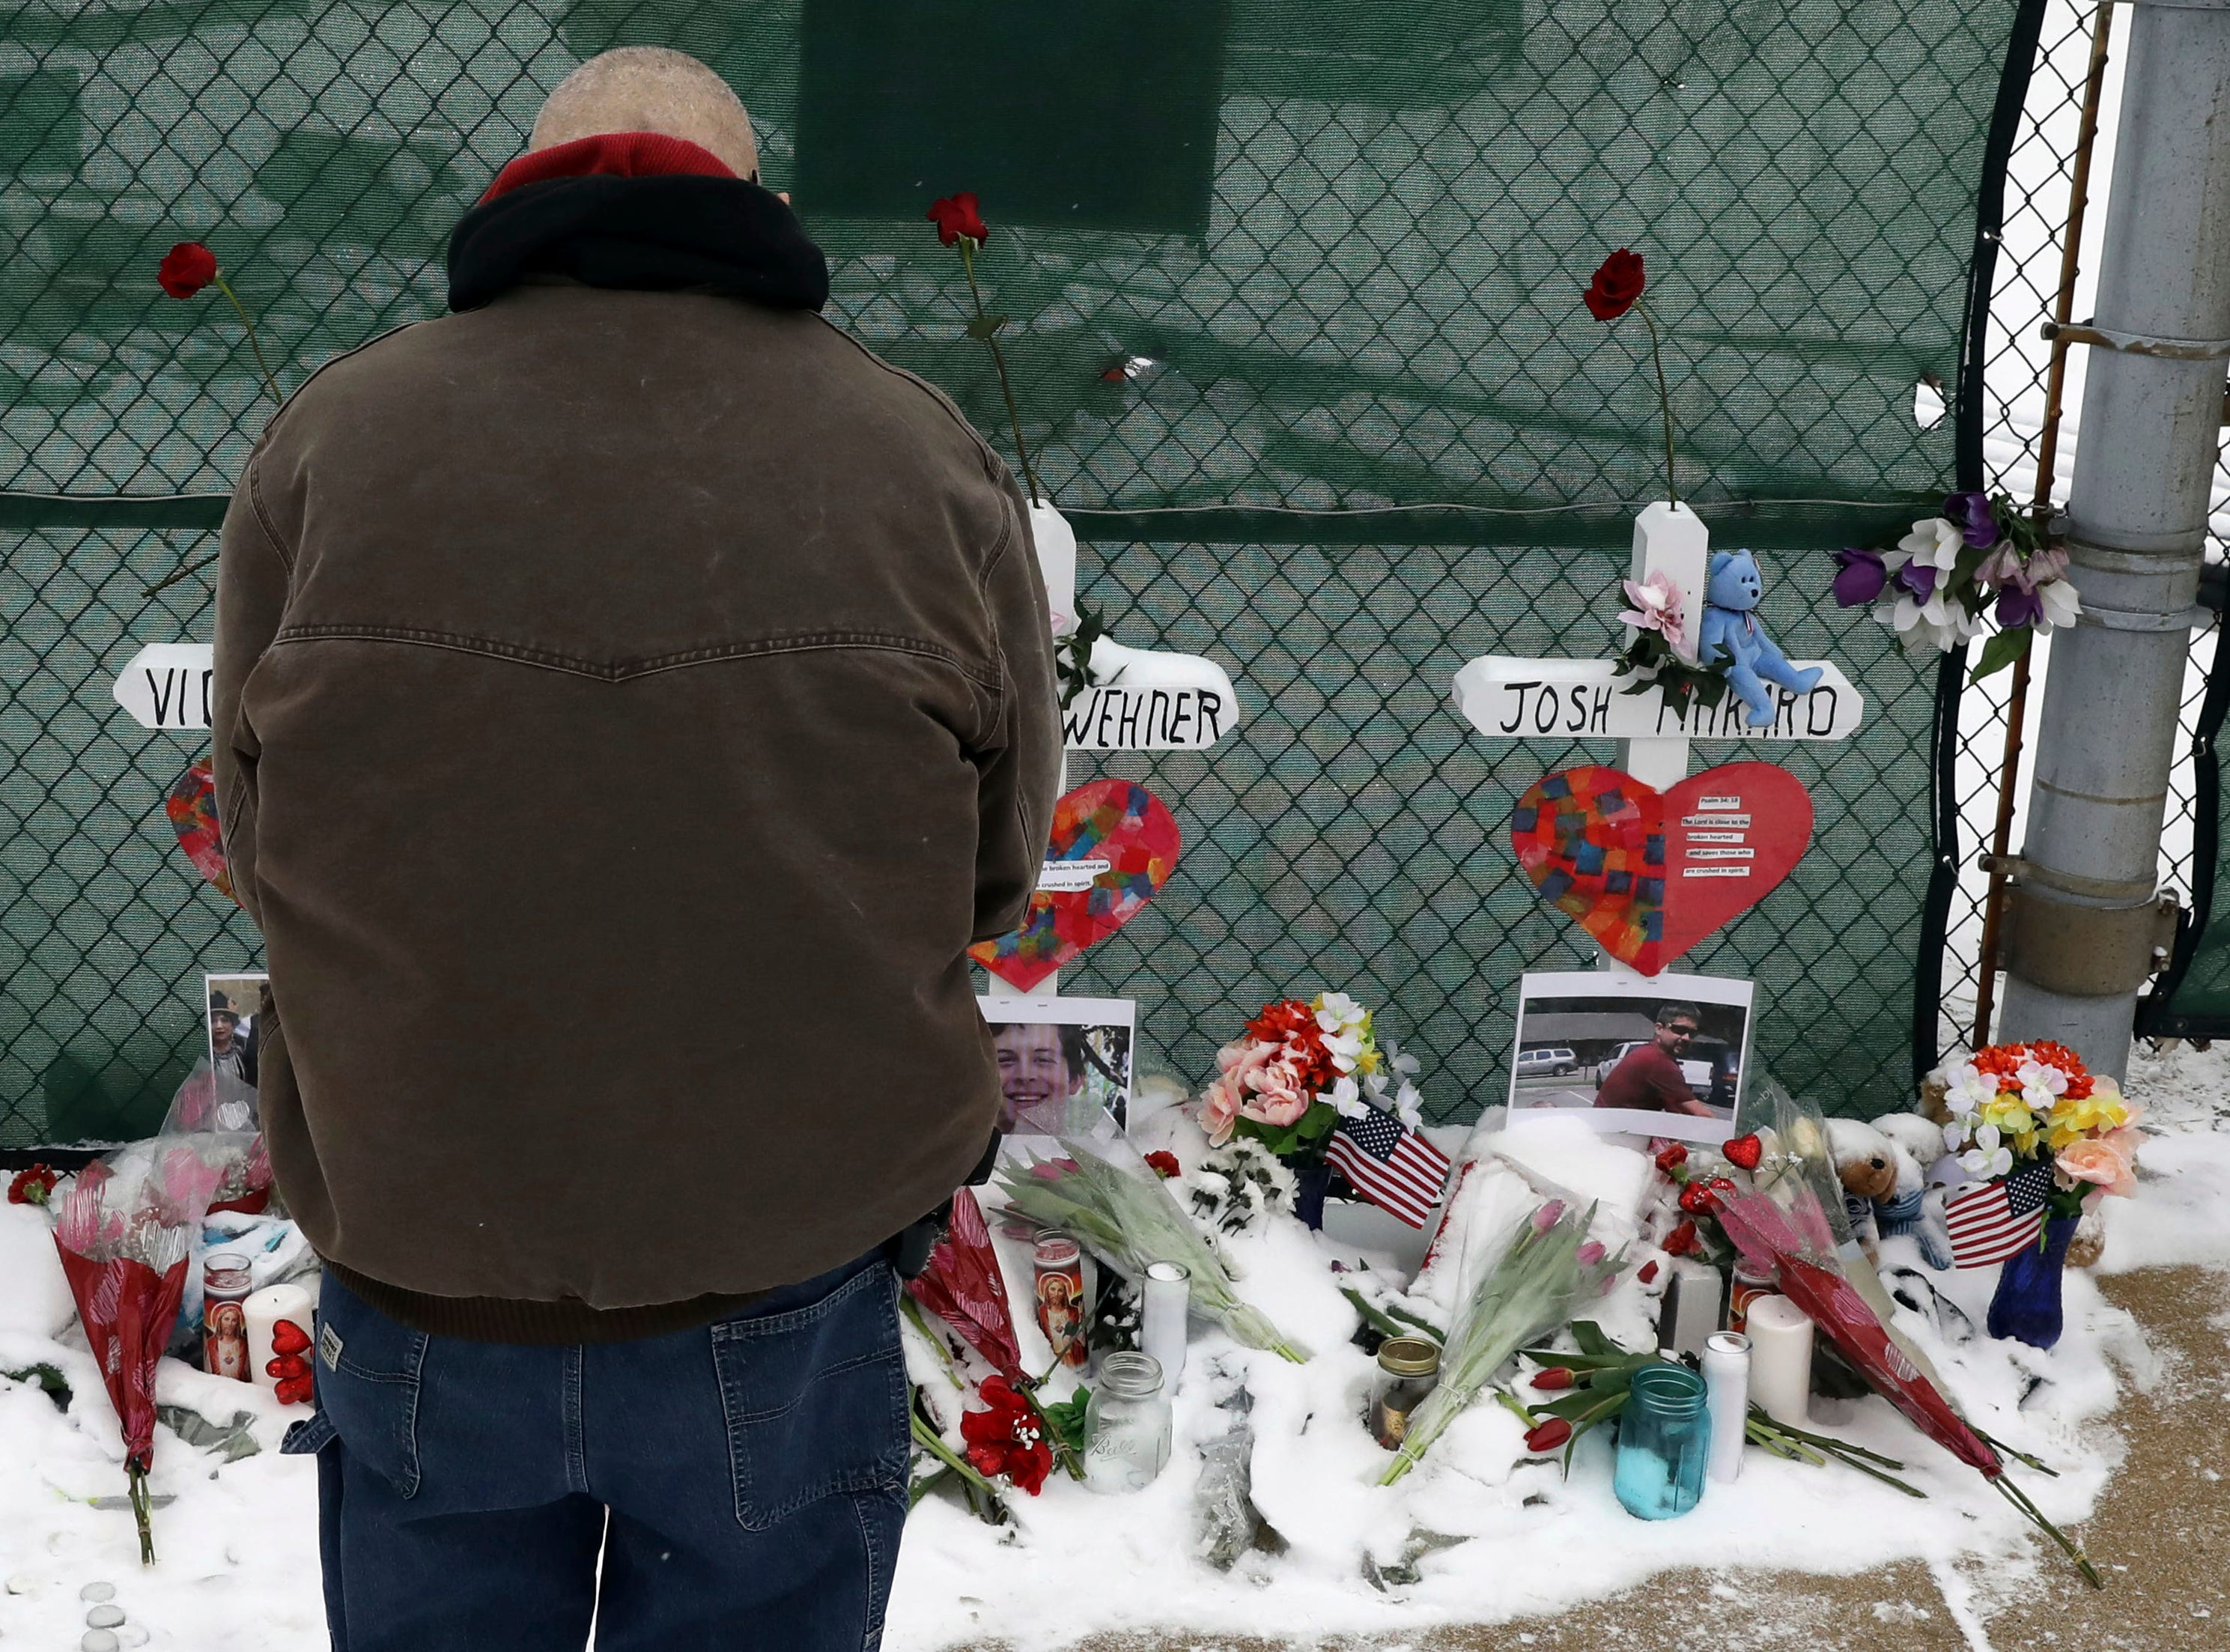 A man asks for a delayed memorial on February 17, 2019 in Aurora, Ill., Near Henry Pratt Co. manufacturing, where several were killed on Friday.